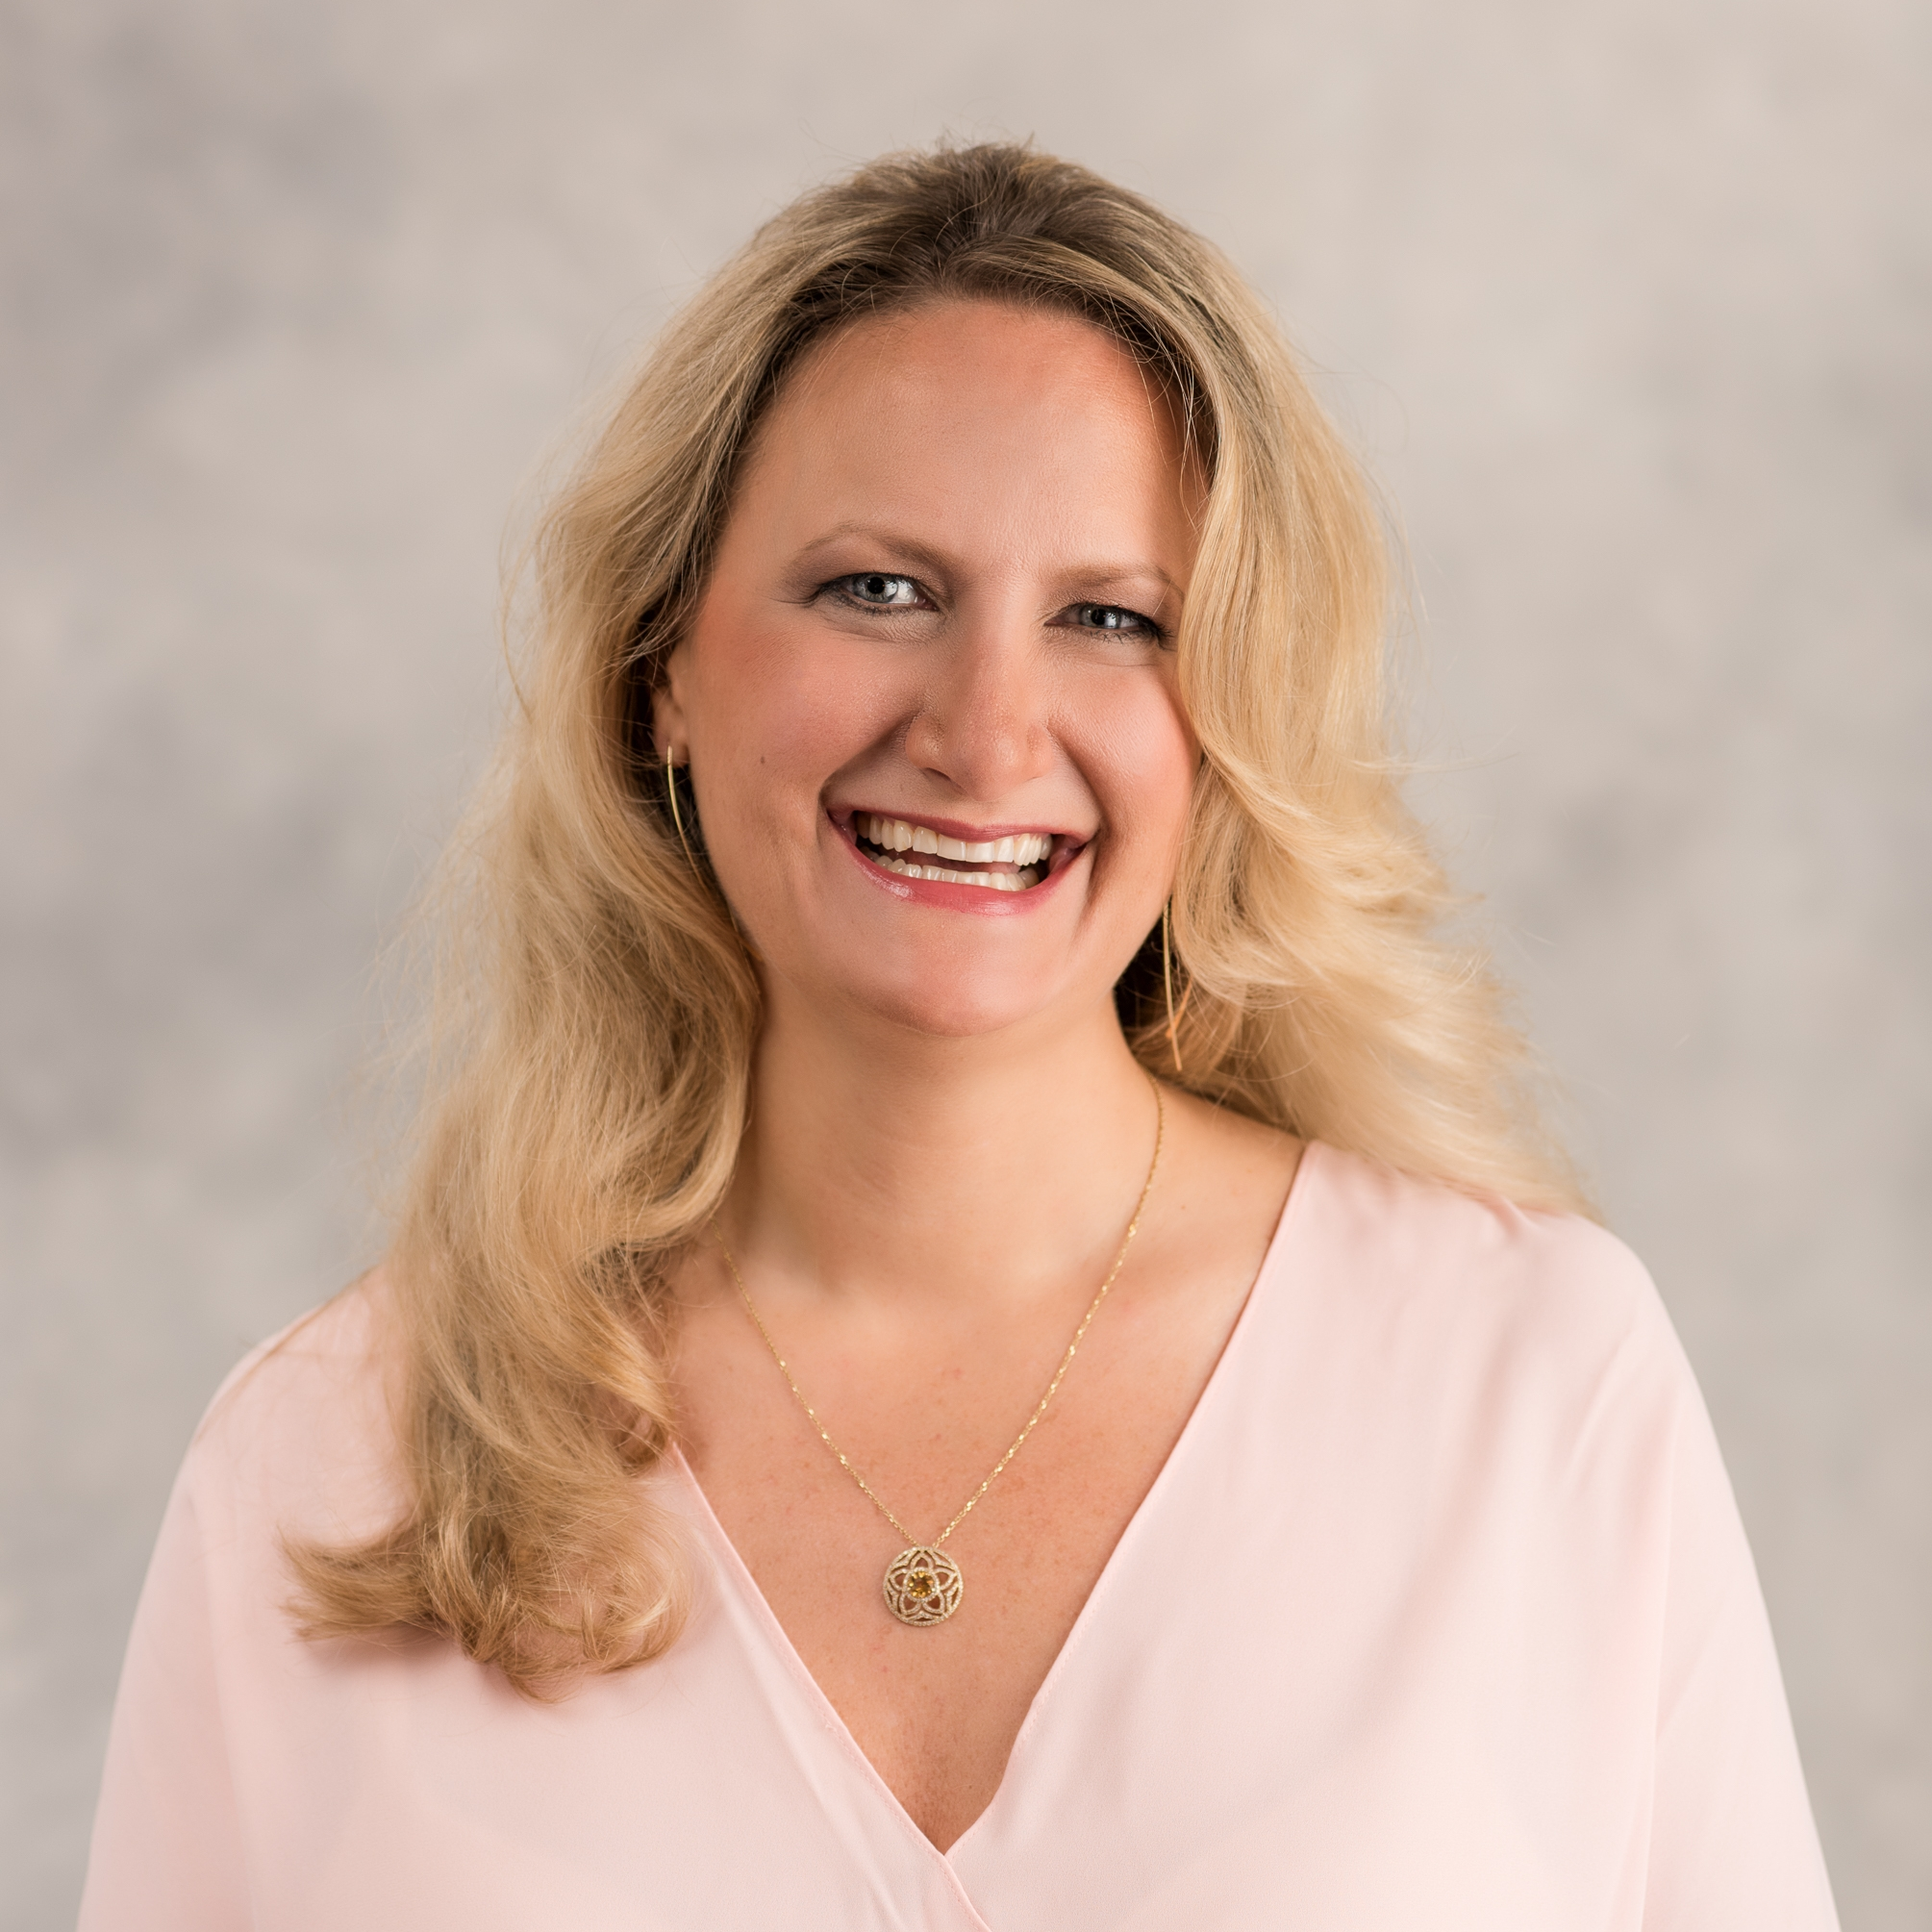 """- """"Meg led an amazing growth mindset workshop for my team of independent sales consultants and I was bubbling with fast talking ideas after the seminar. I was so pleased that I booked her again for a leadership conference. Her delightful wisdom and generosity helped us grow in ways that will impact others for years to come. I would highly recommend Meg for a mindset coaching workshop.""""Gayle Rachford, Owner, Compassionate Concepts"""